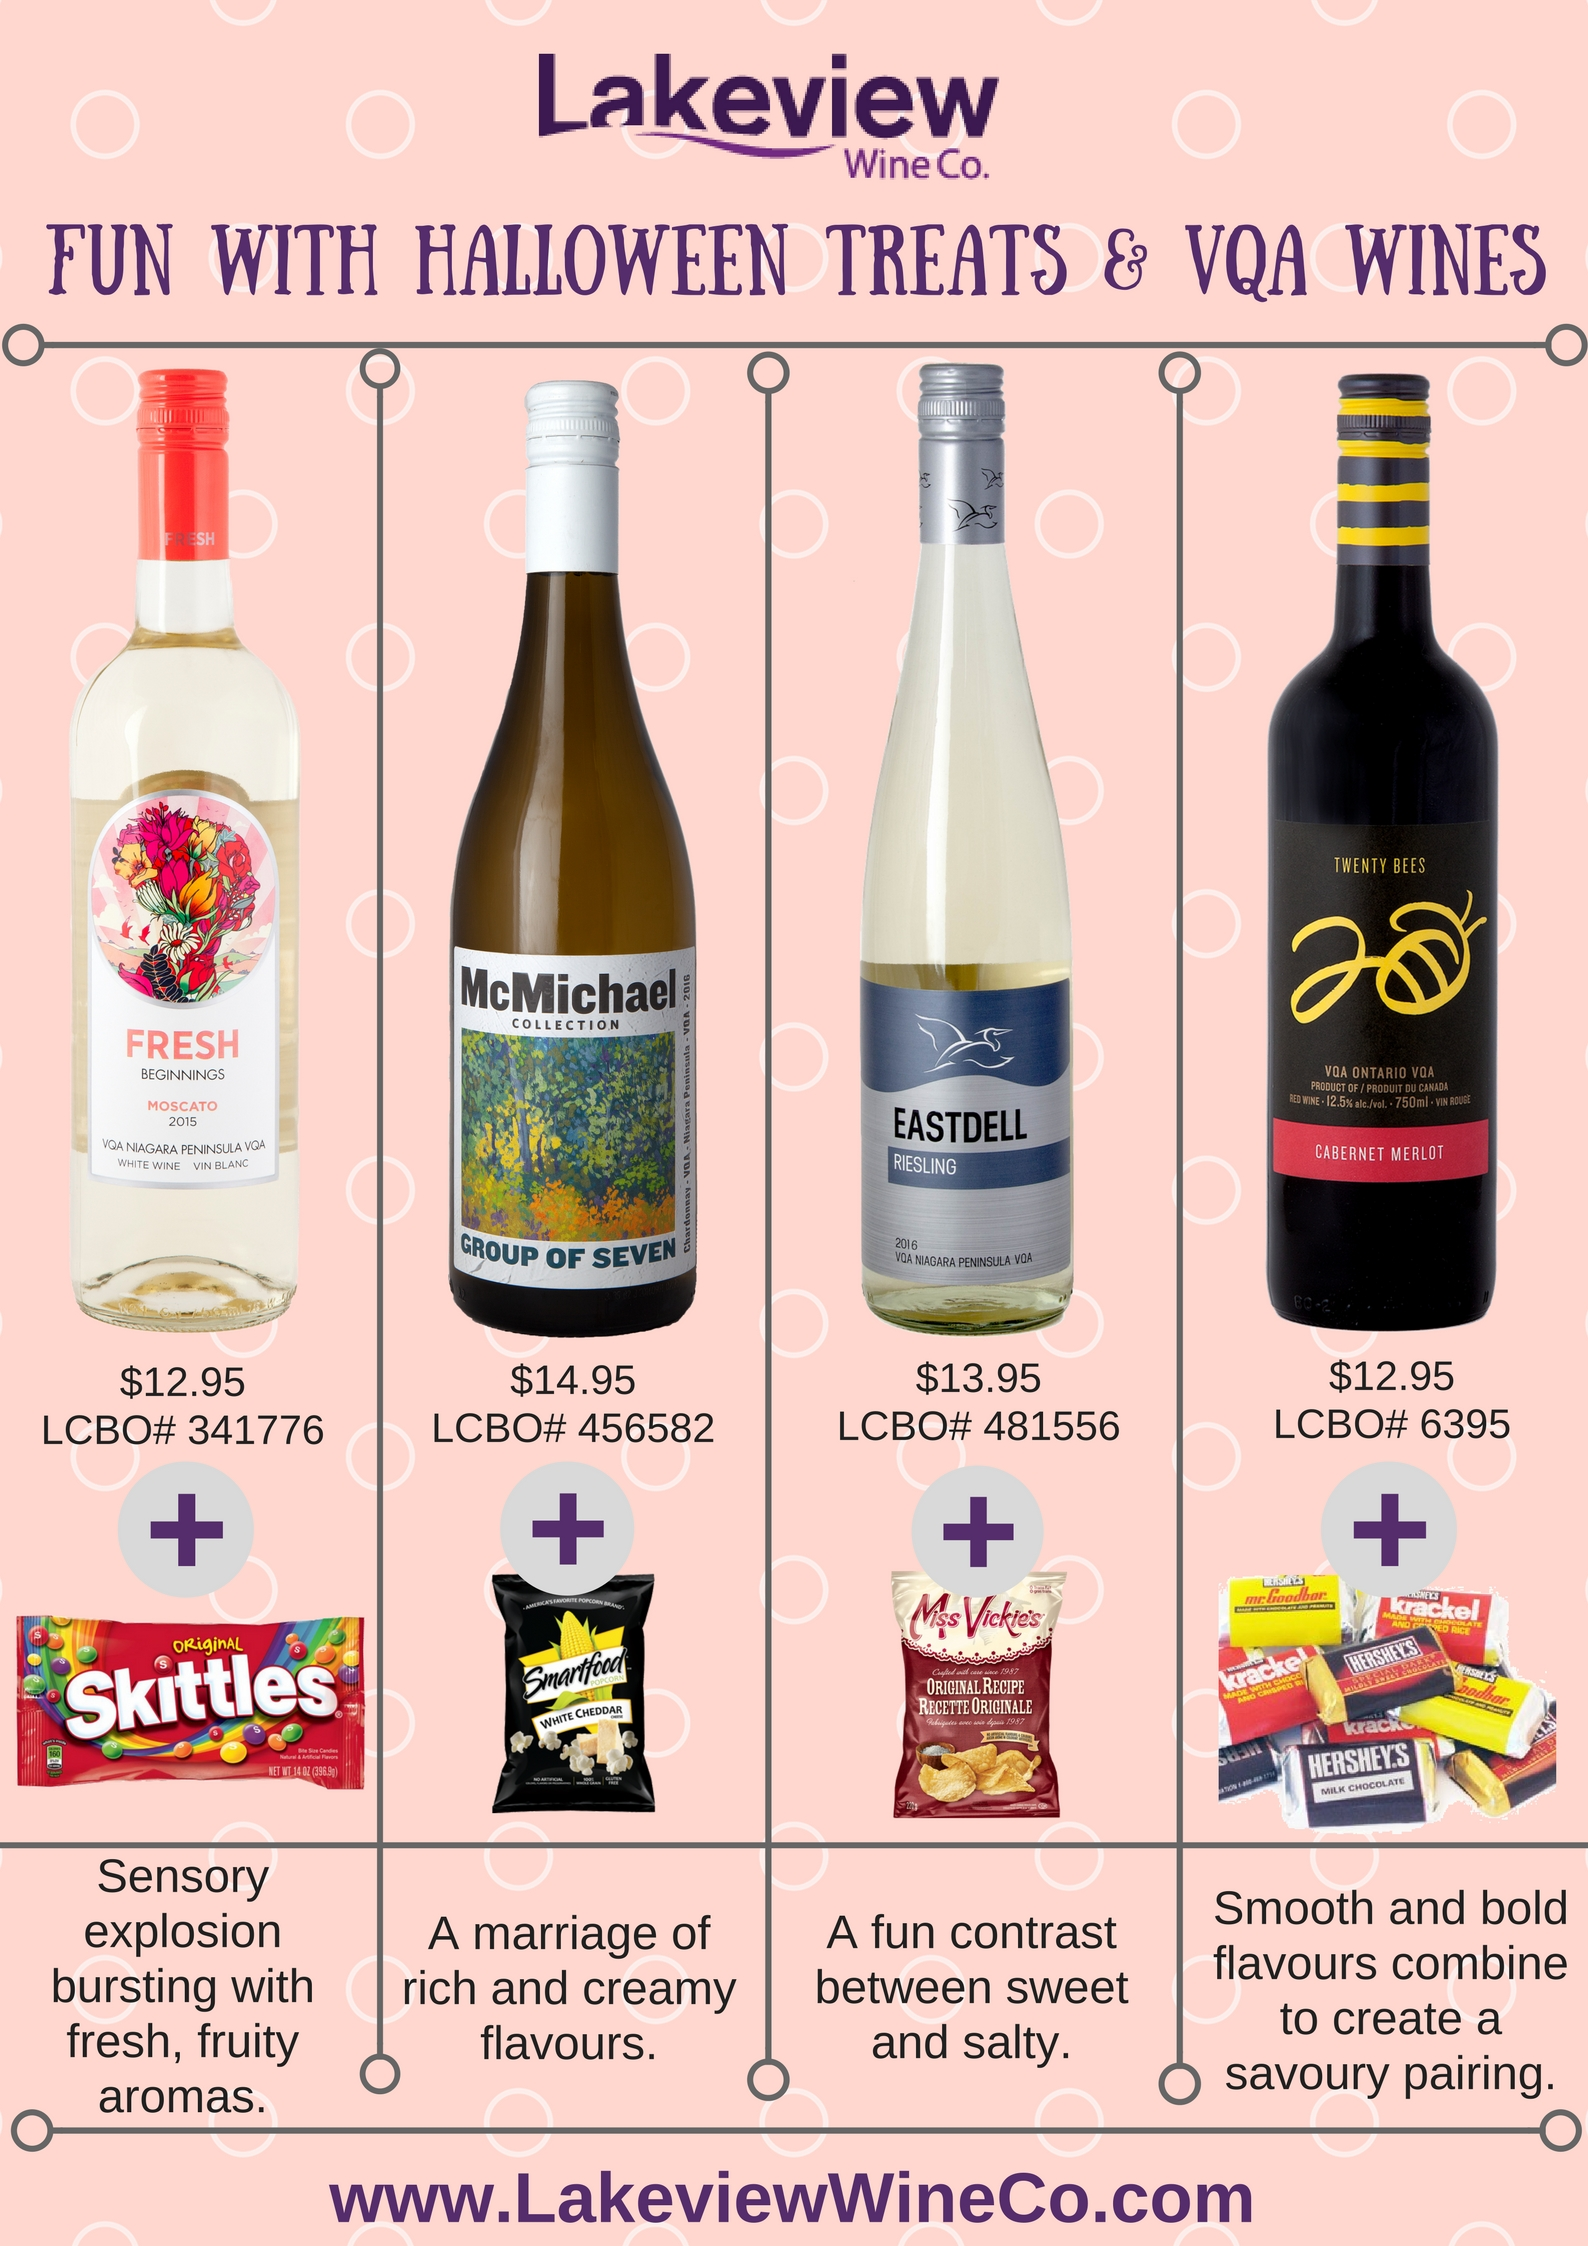 Wine & candy pairings, niagara, lakeview wine co.